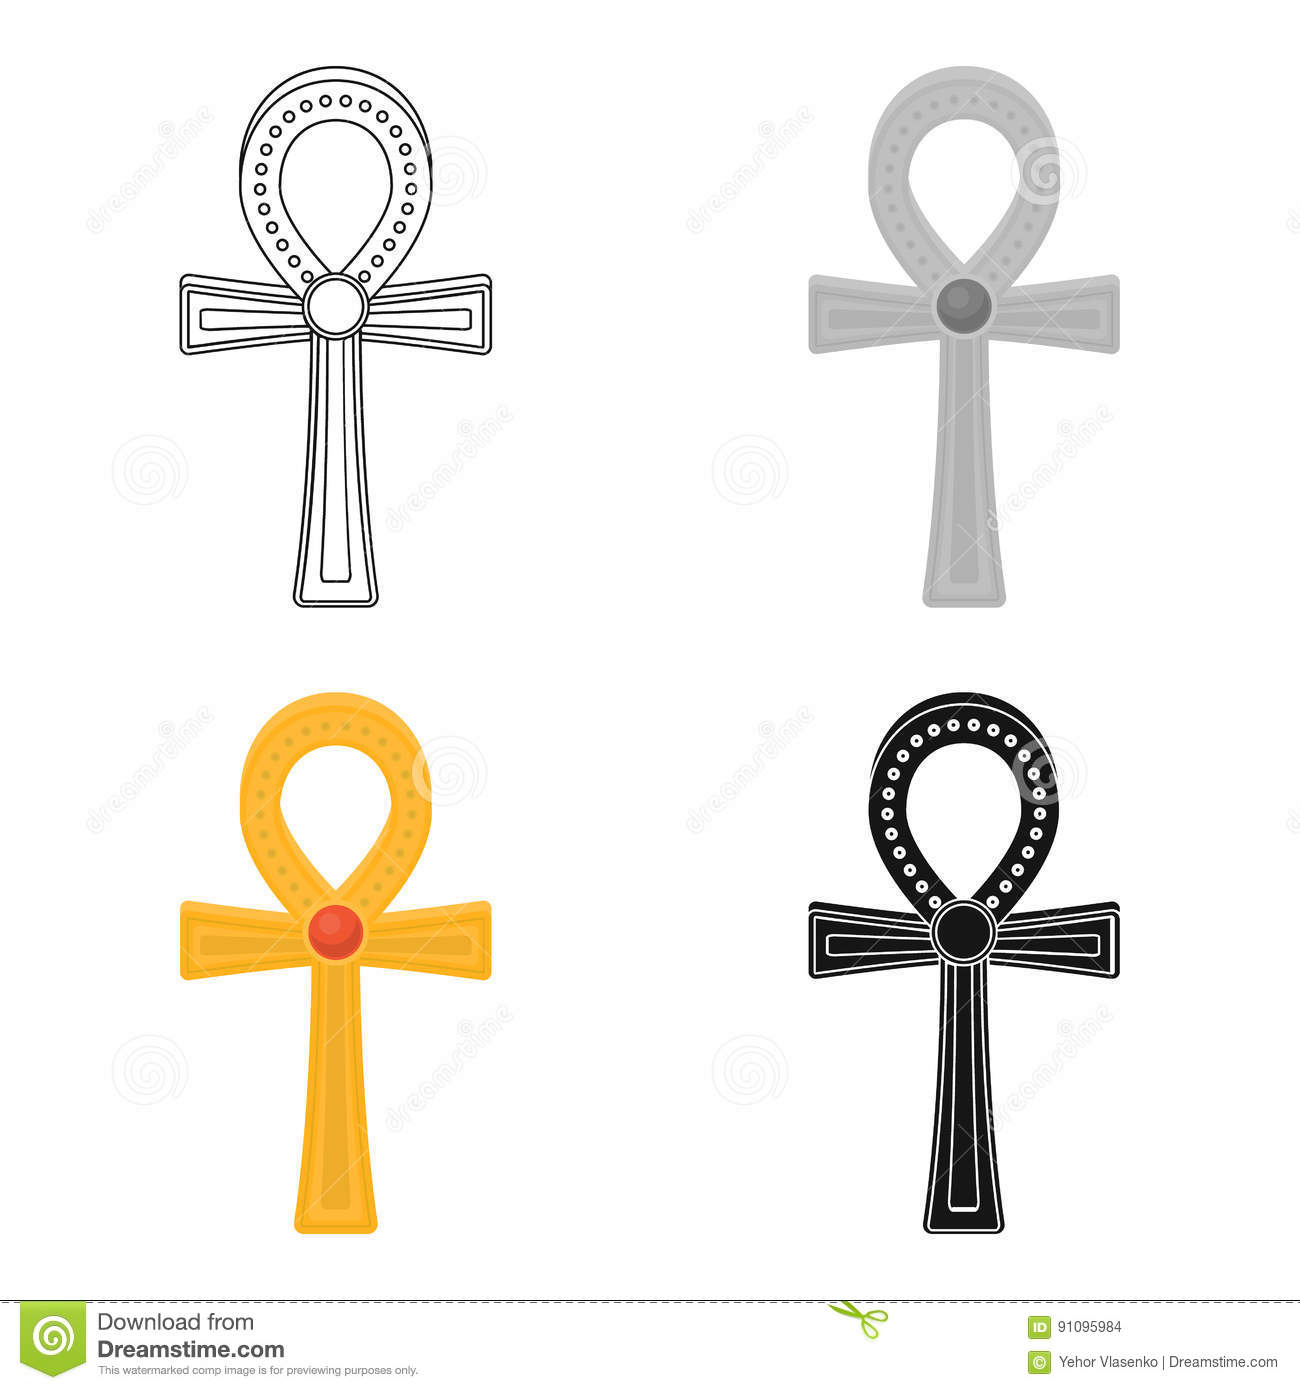 Ankh Icon In Cartoon Style Isolated On White Background